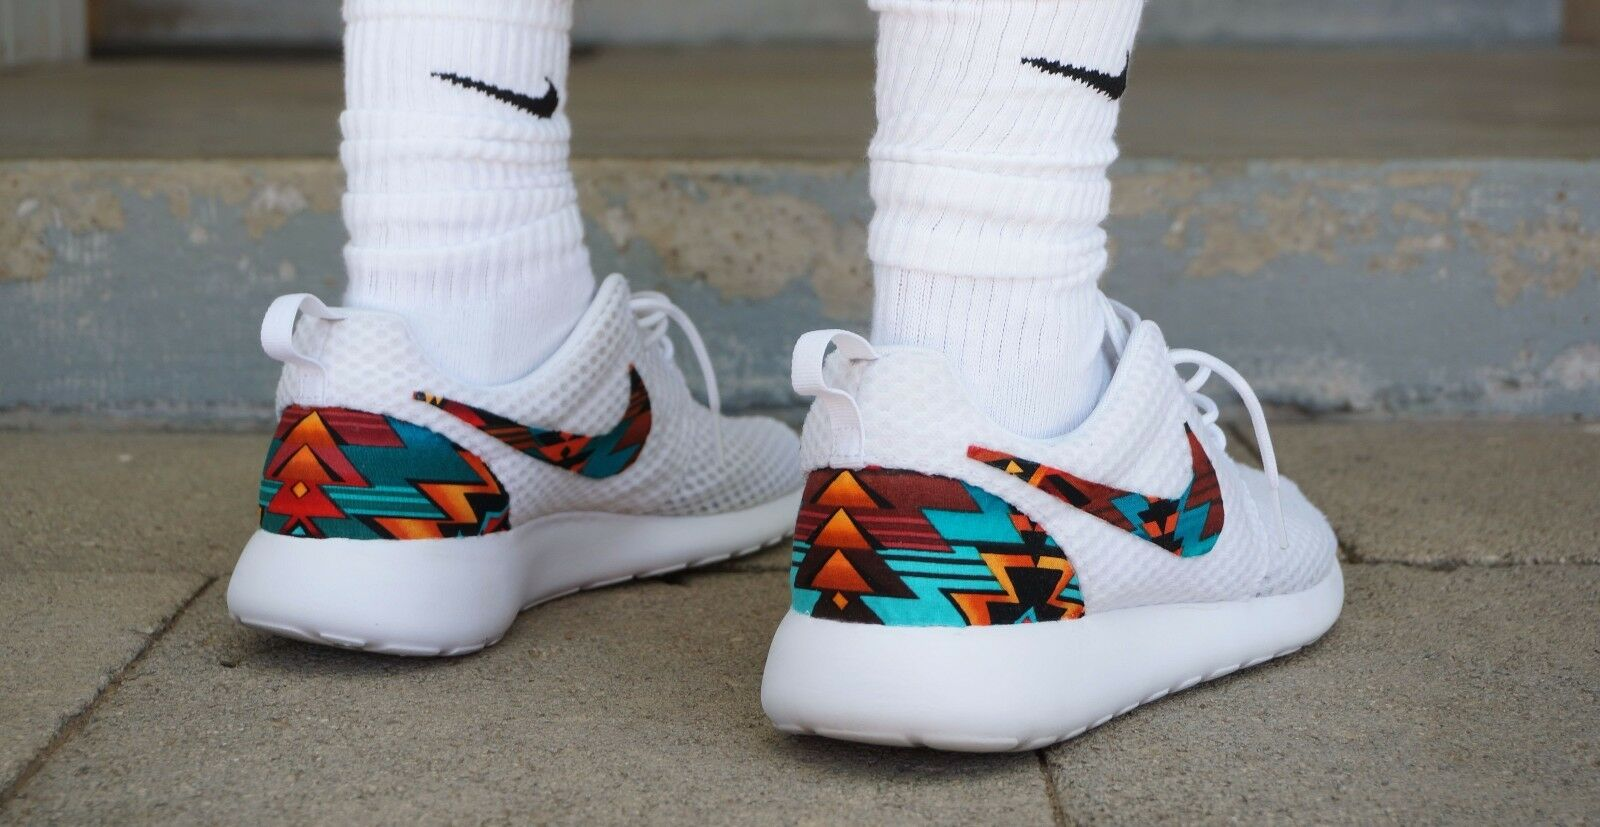 new product 43d67 3c440 ... order nueva nike roshe run tribal custom turquesa naranja blanco tribal  run edición hombres comodos marca